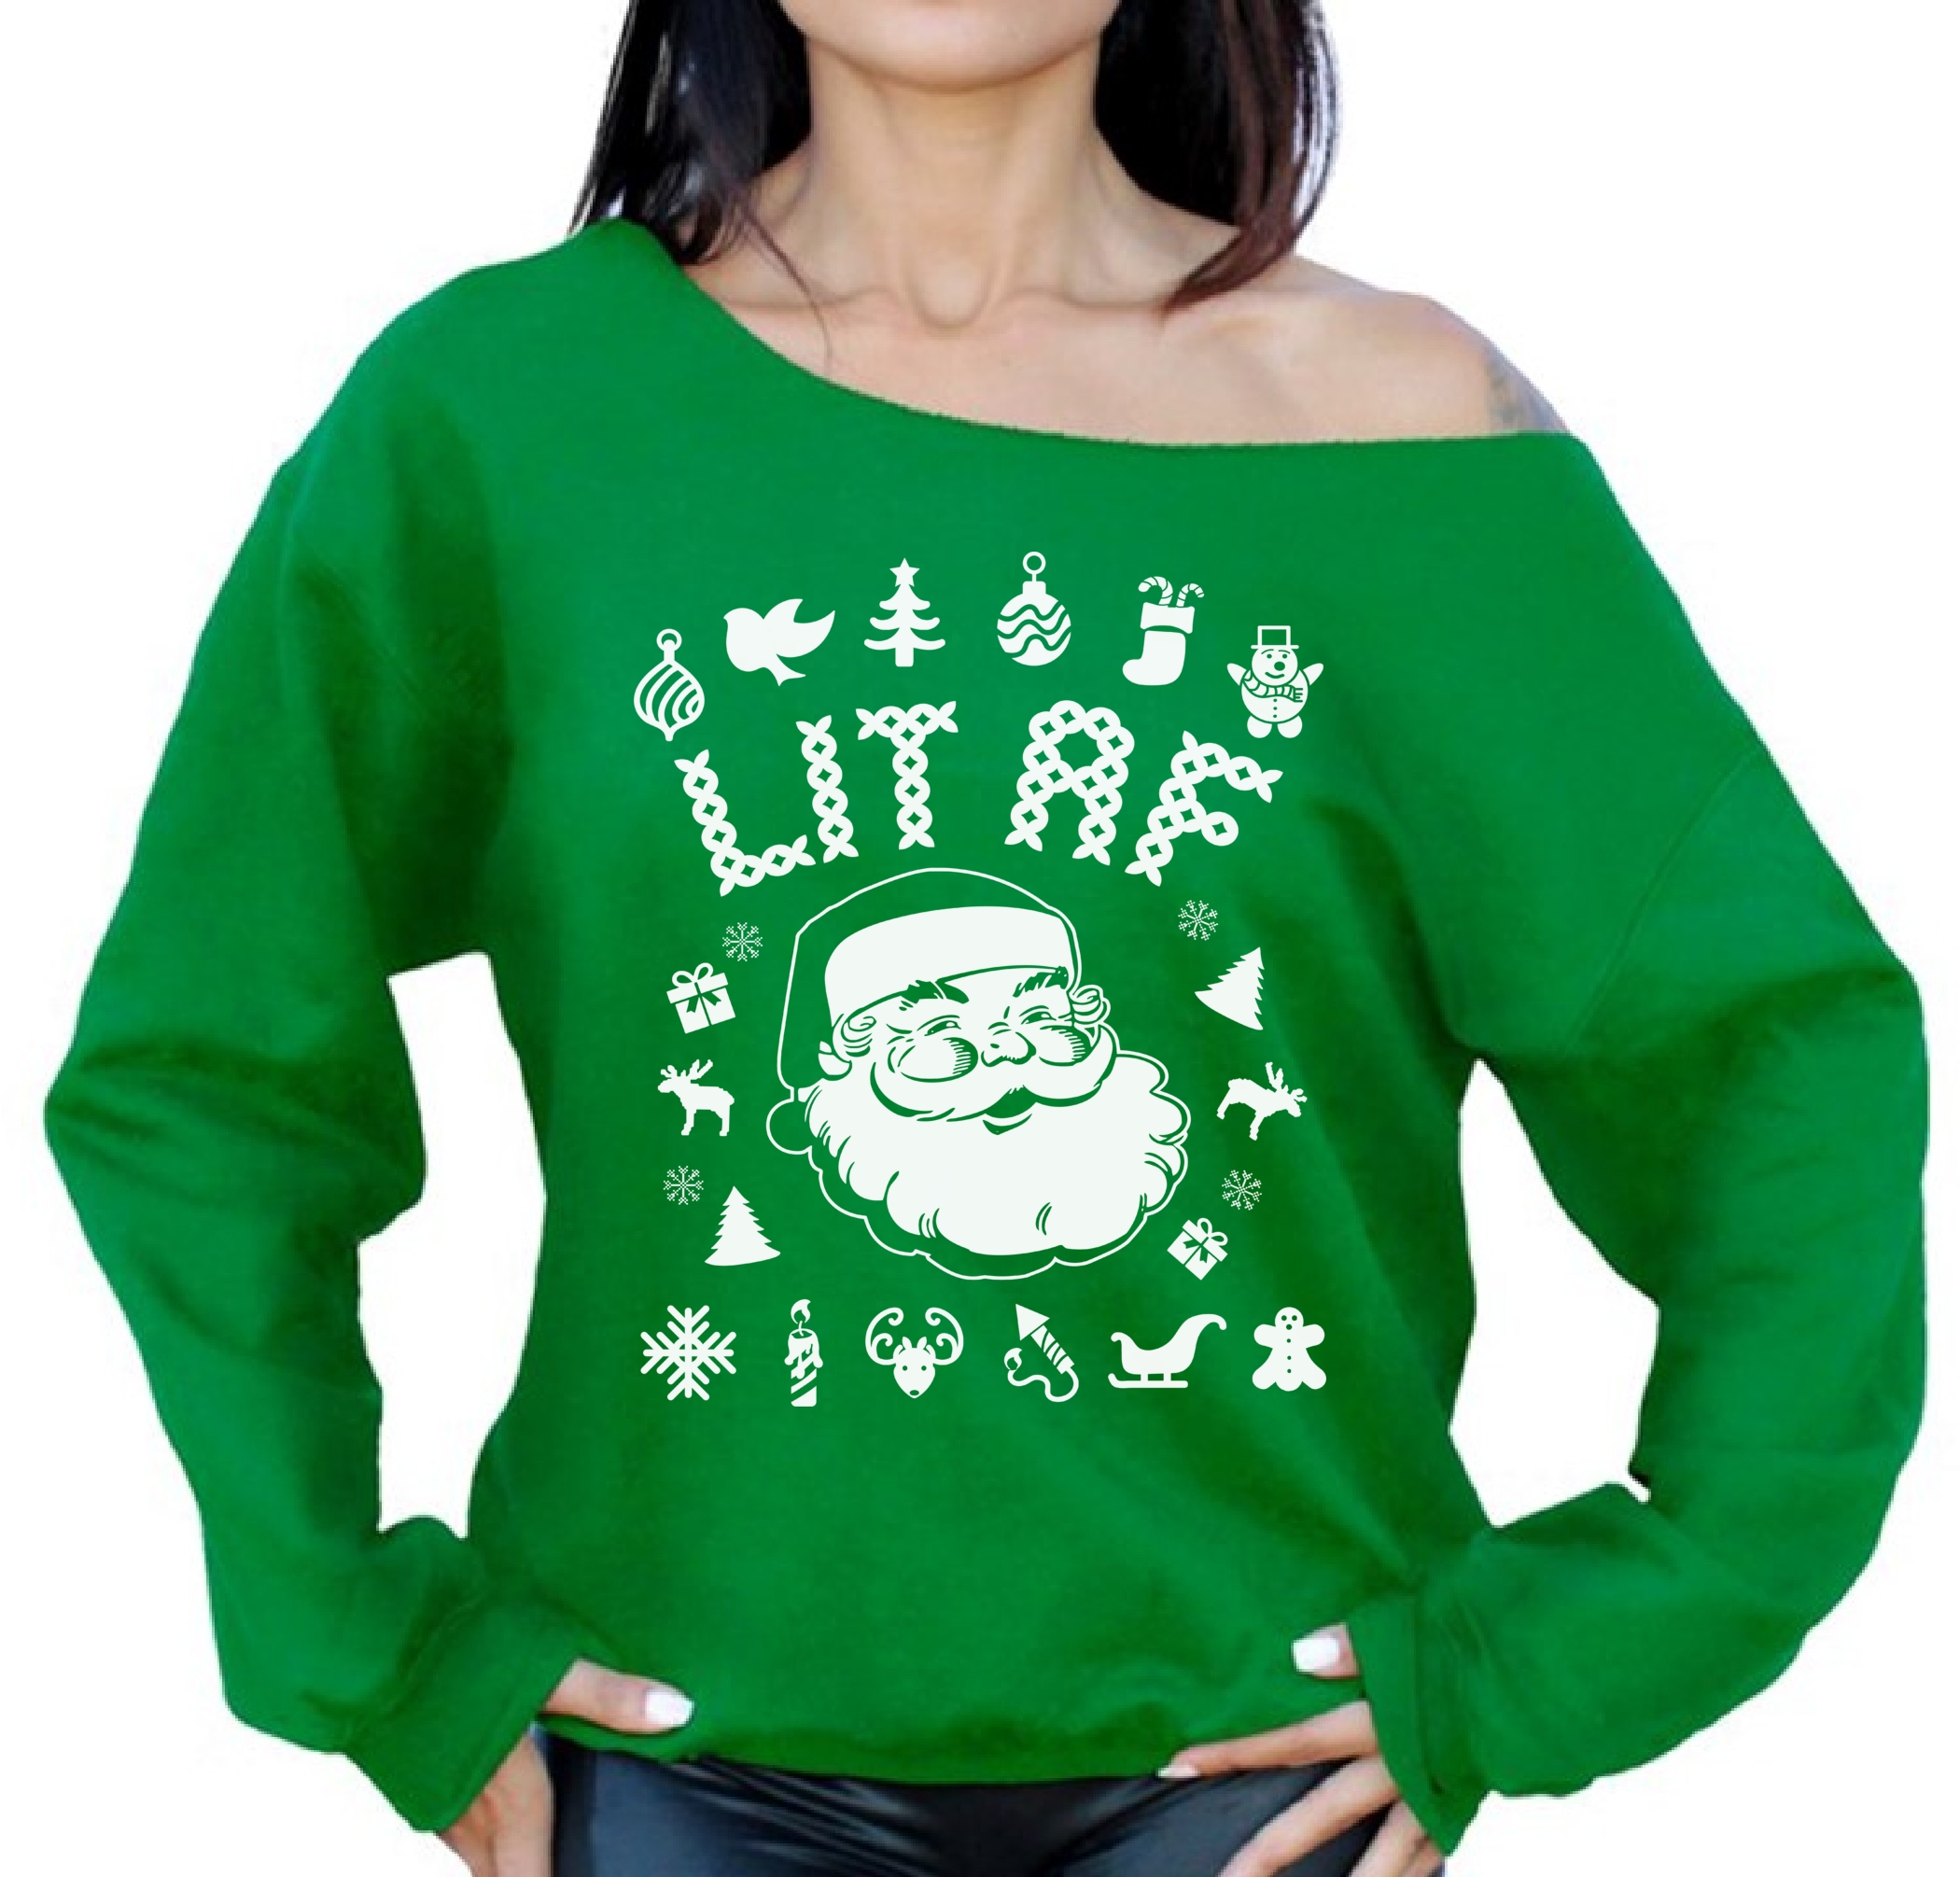 Off The Shoulder Lit Christmas Sweatshirt Ugly Christmas Sweater For